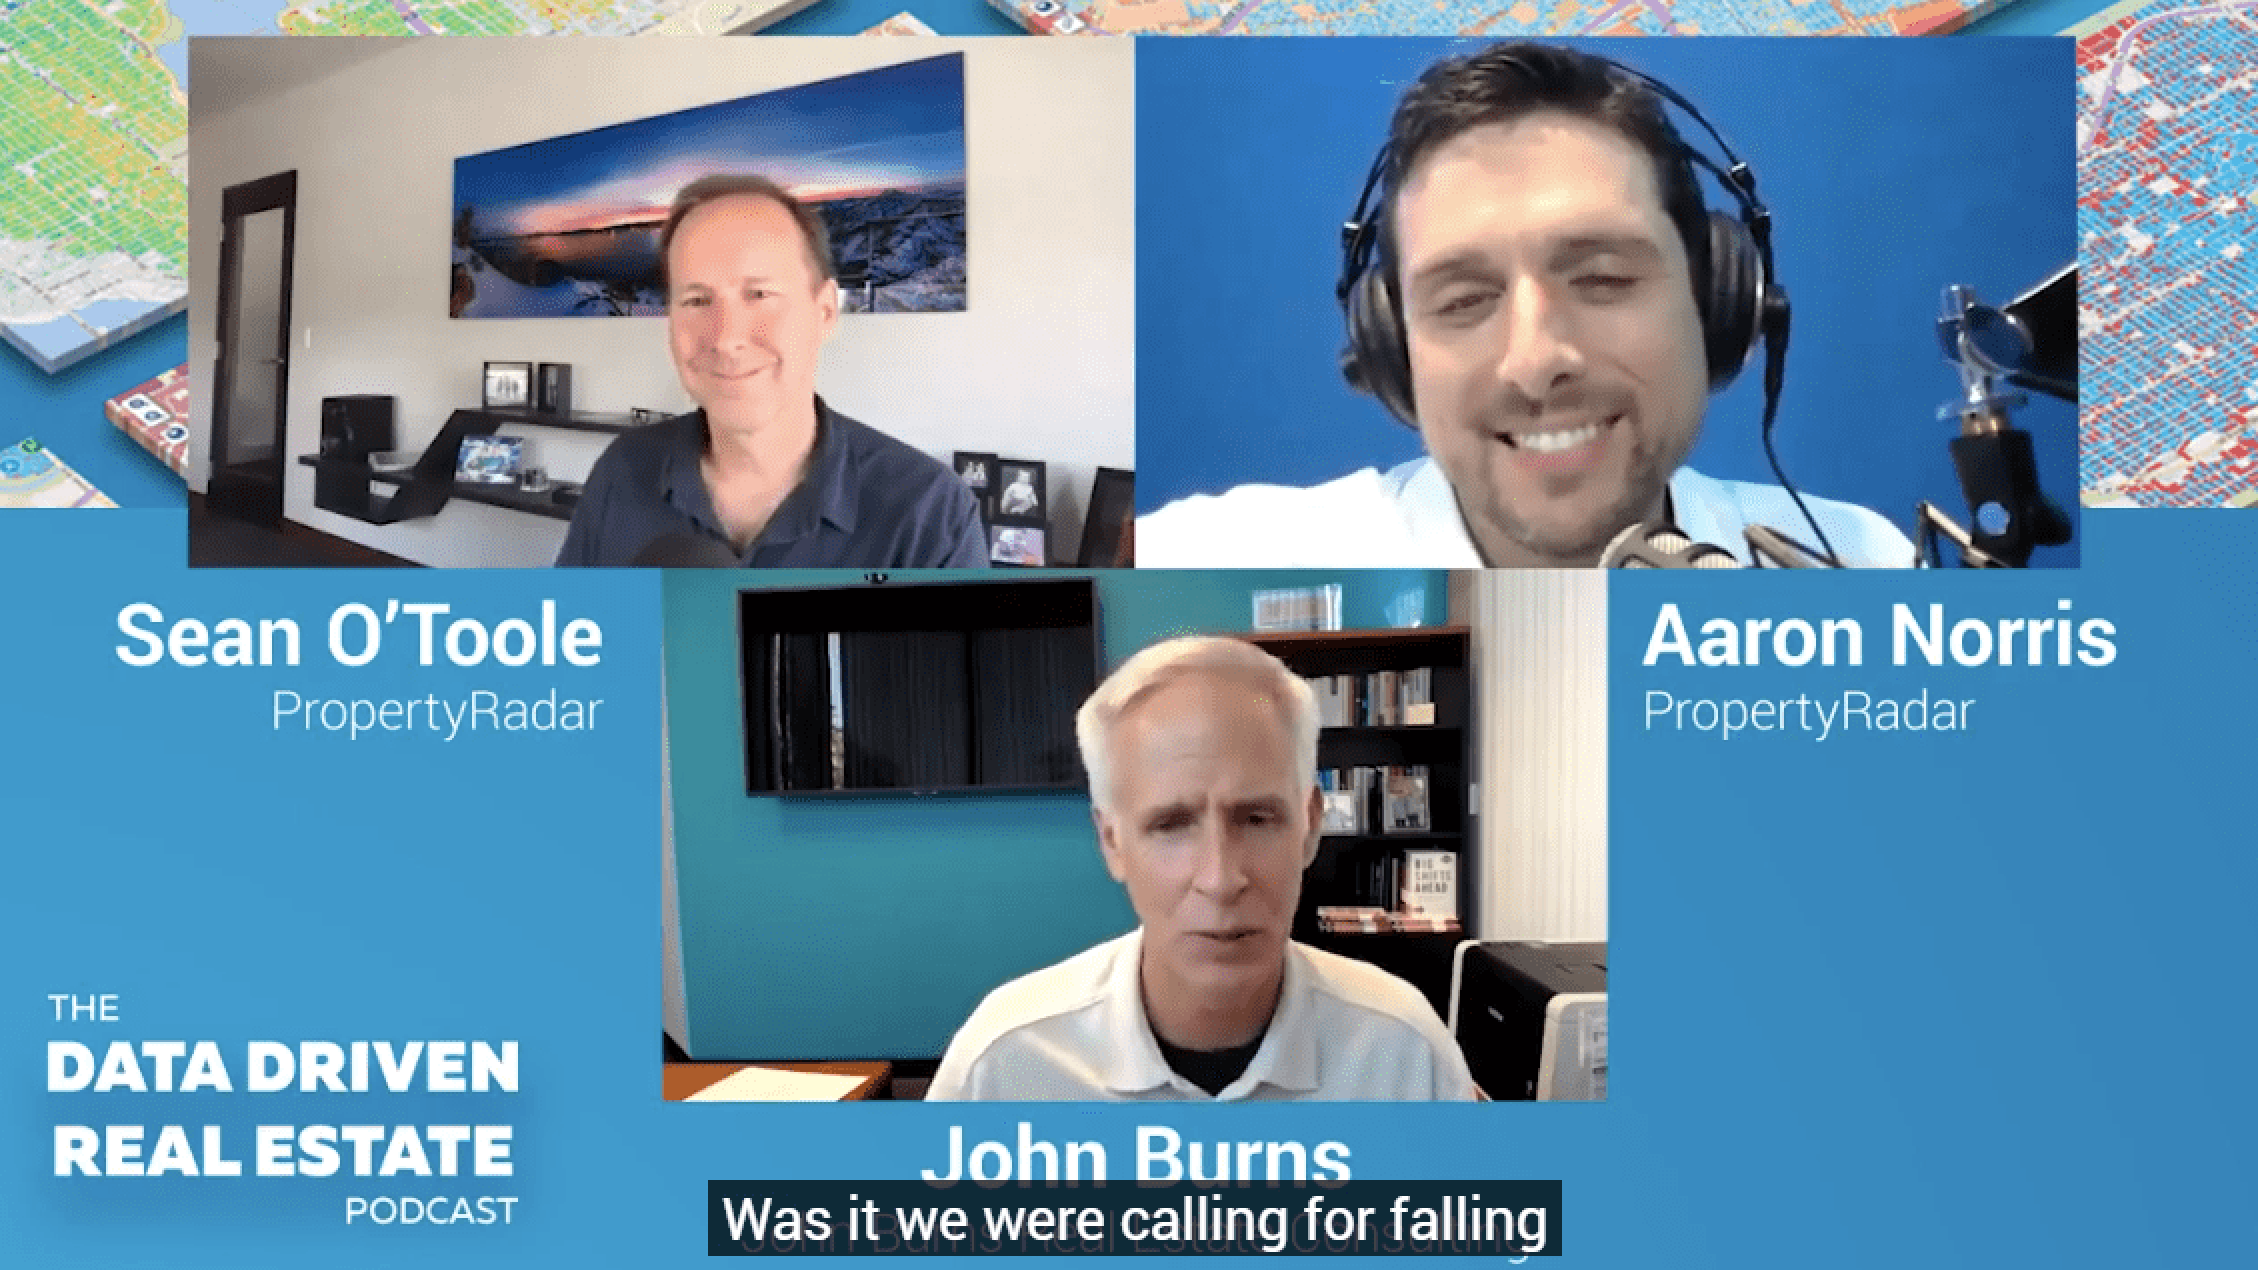 John Burns with John Burns Real Estate Consulting (JBREC) joins us this week. For years, the JBREC team has consulted with builders, institutional funds, built-to-rent firms, and Wall Street